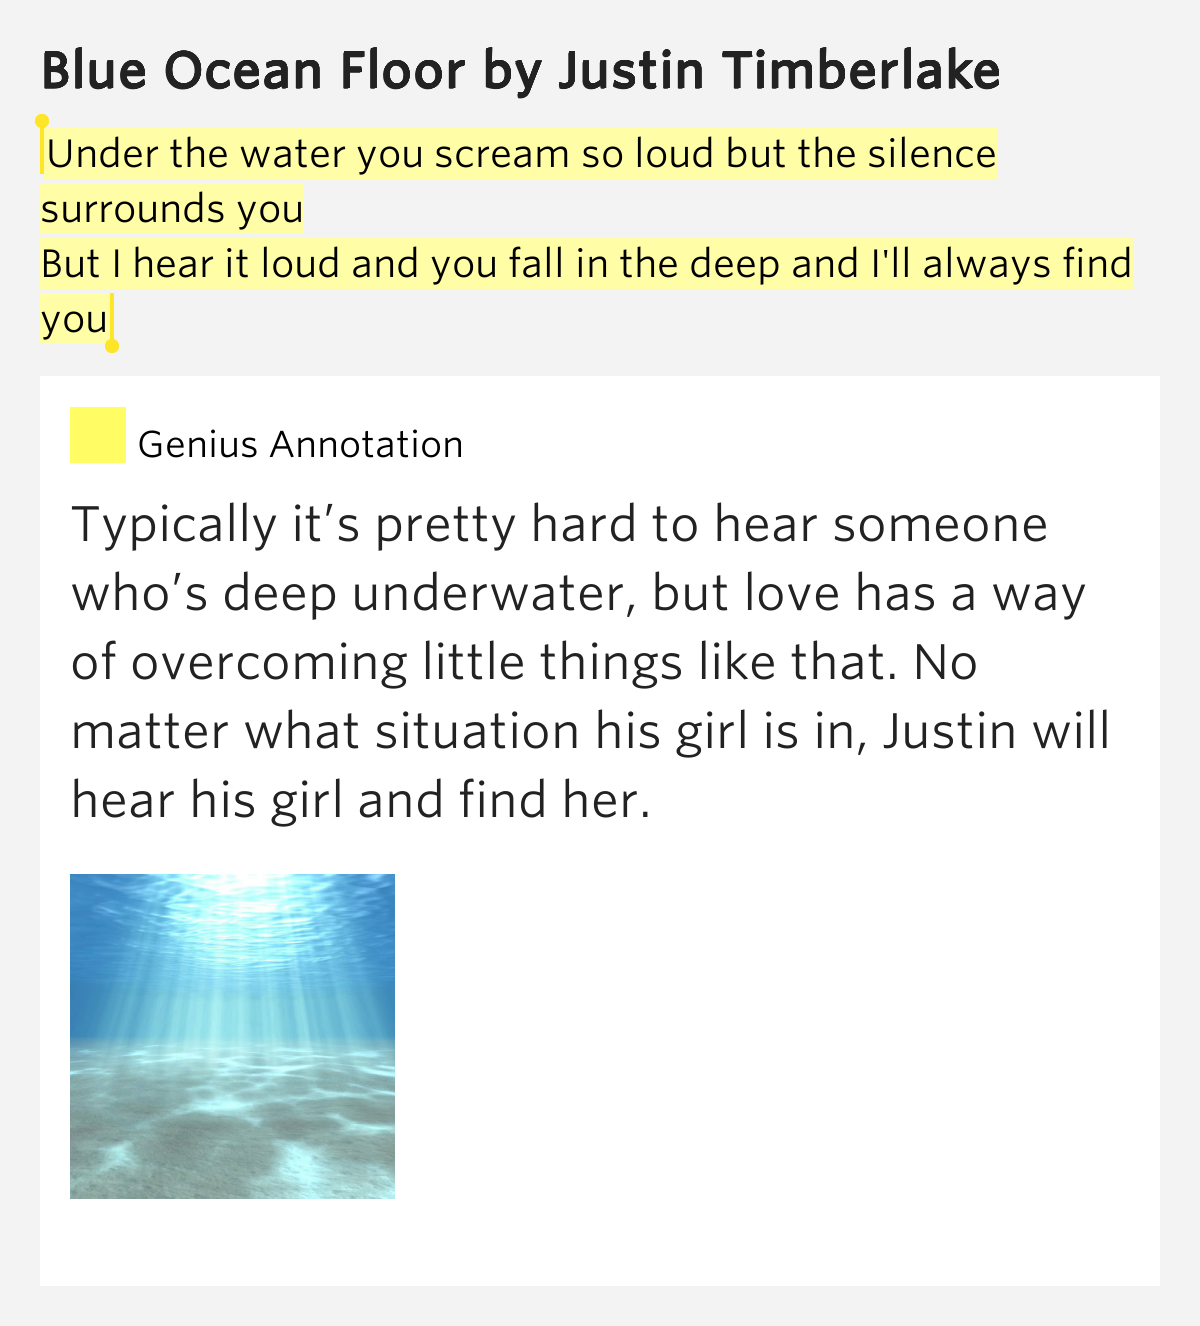 Blue Ocean Floor Lyrics Meaning Under The Water You Scream